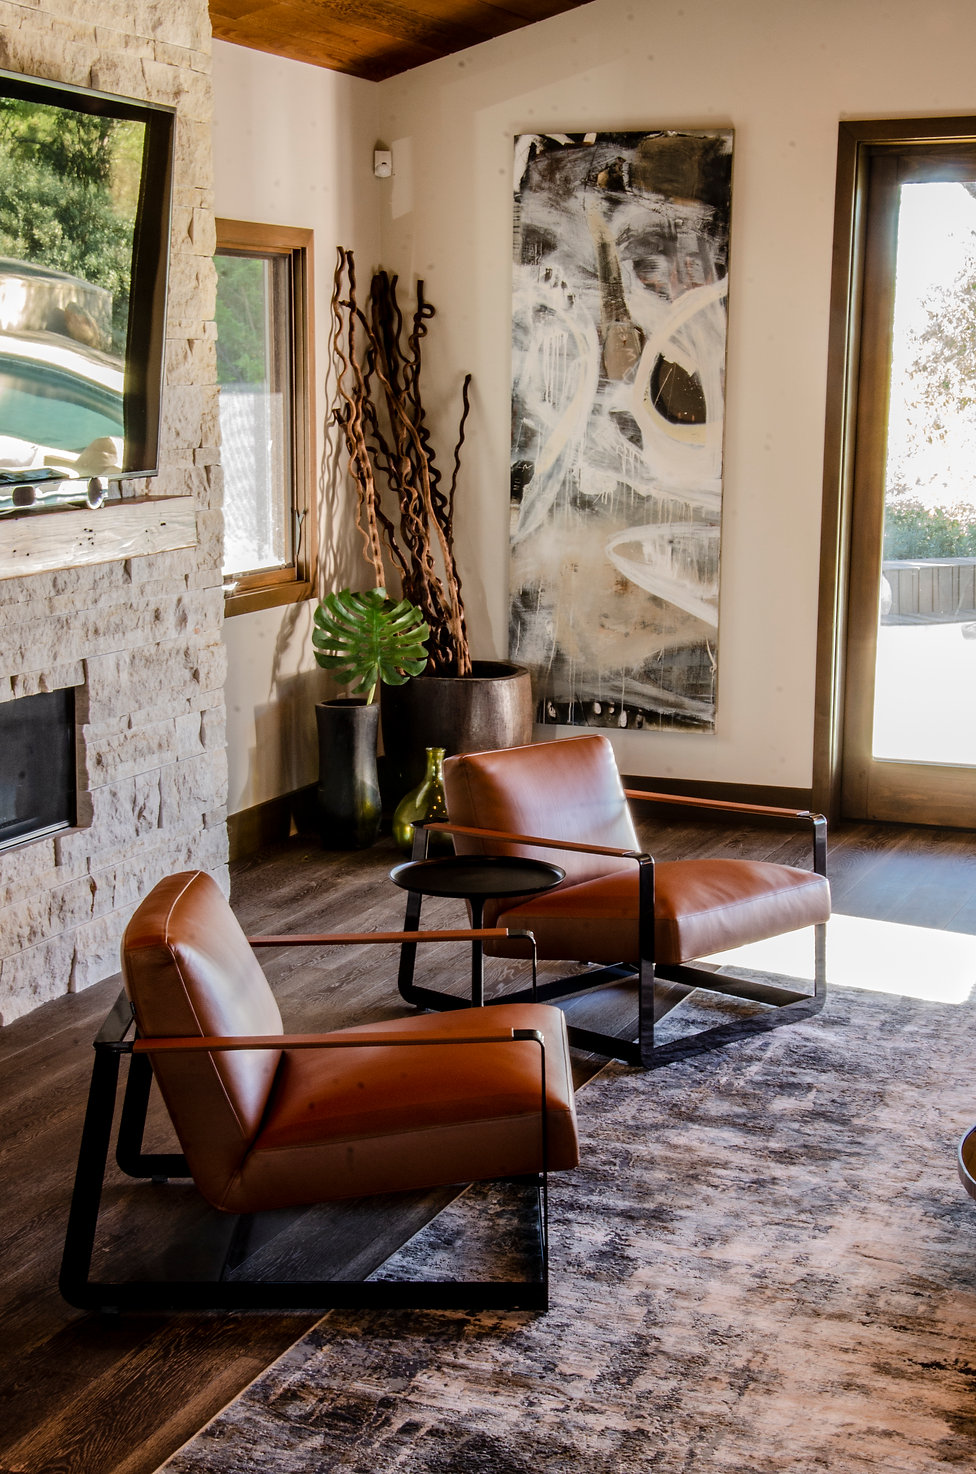 Modern Mid-Century Craftsman interior design by Paschall Design. This is a photo of the living room and entry from another angle. A closeup of the beautiful brown leather modern lounge chairs, with artwork, planters and stone fireplace in the background. Wood trim throughout against sofa white walls. You can see the large rug well in this shot.